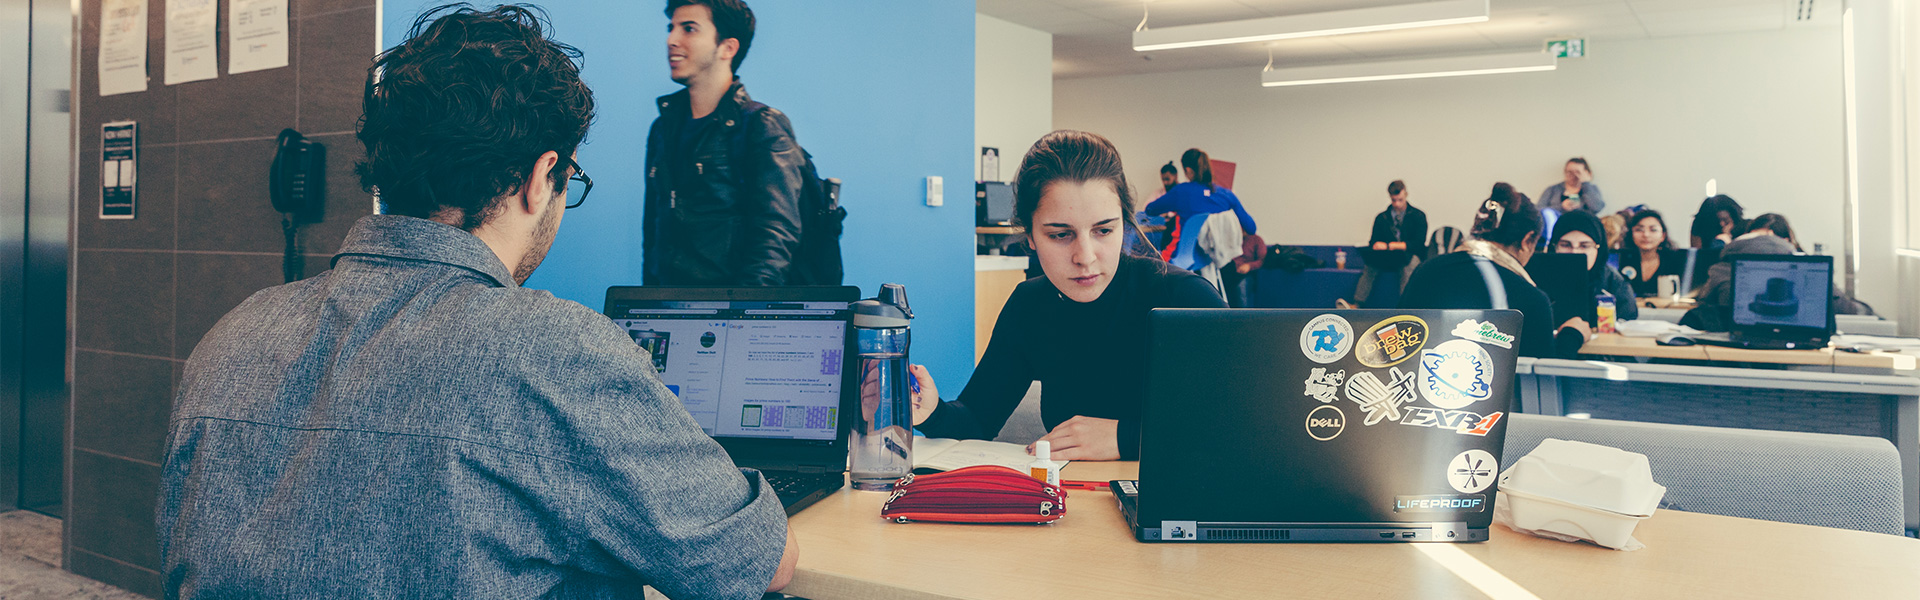 Students working in a study space